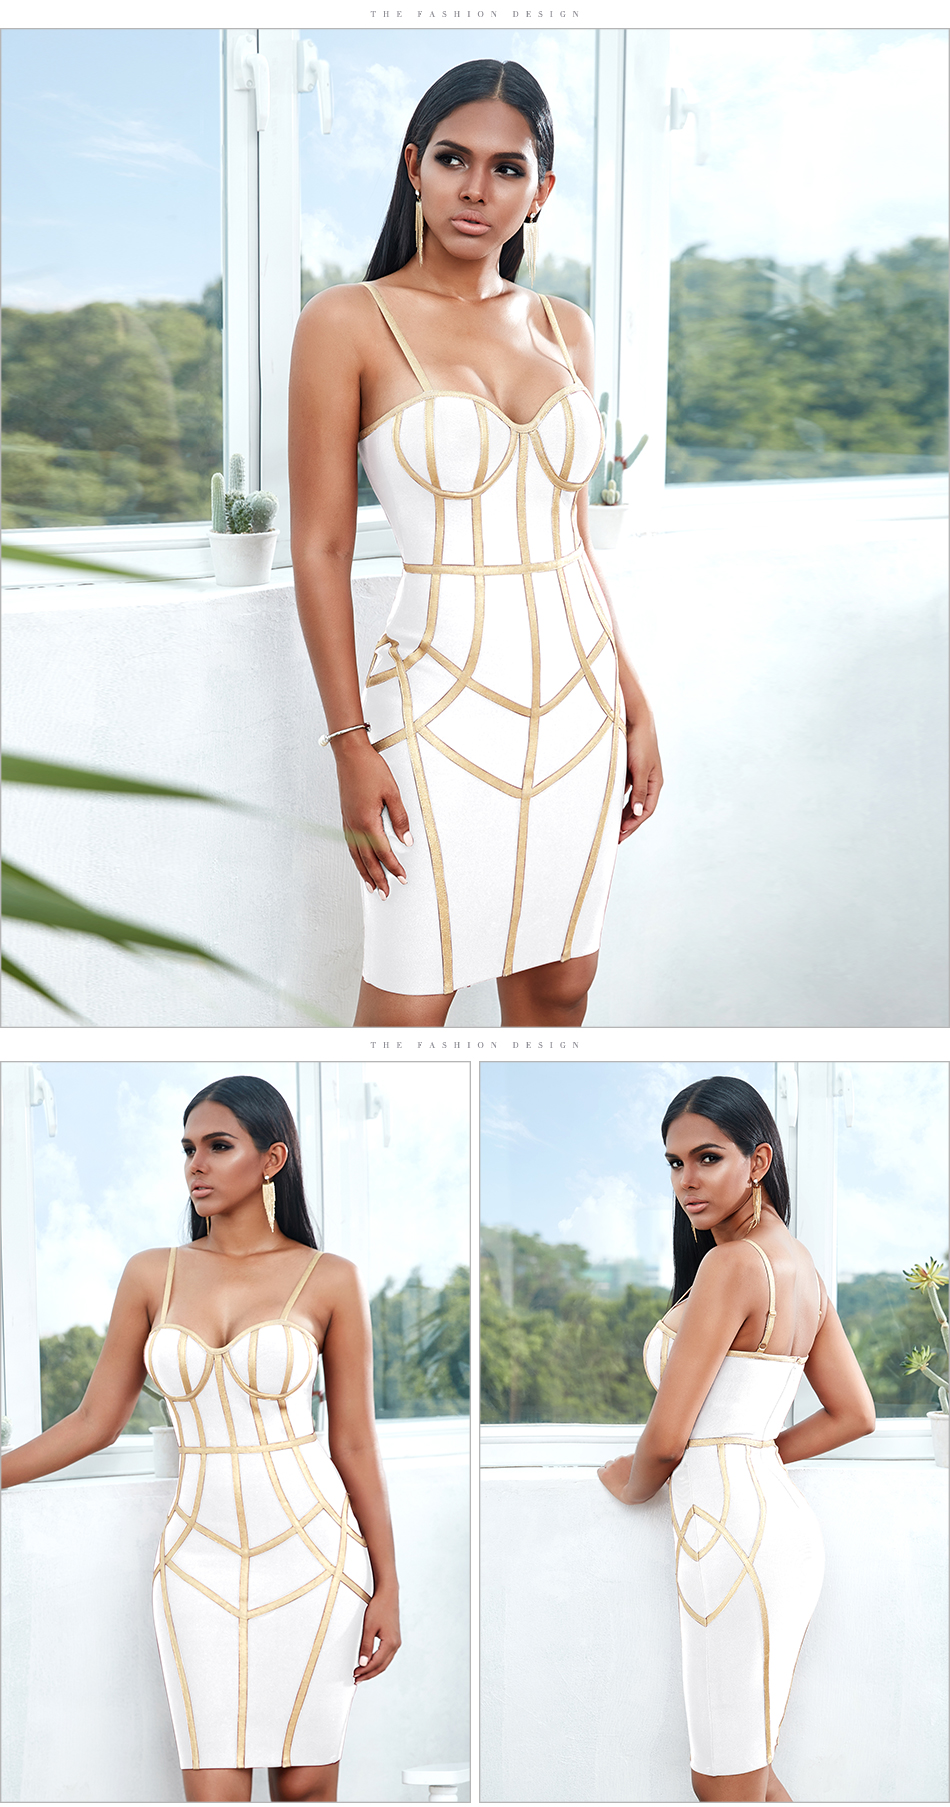 H0608dc70561440aca72e40bbd970a776u - Adyce New Summer Bodycon Bandage Dress Women Vestido Sexy Spaghetti Strap Sleeveless Club Hot Celebrity Evening Party Dress